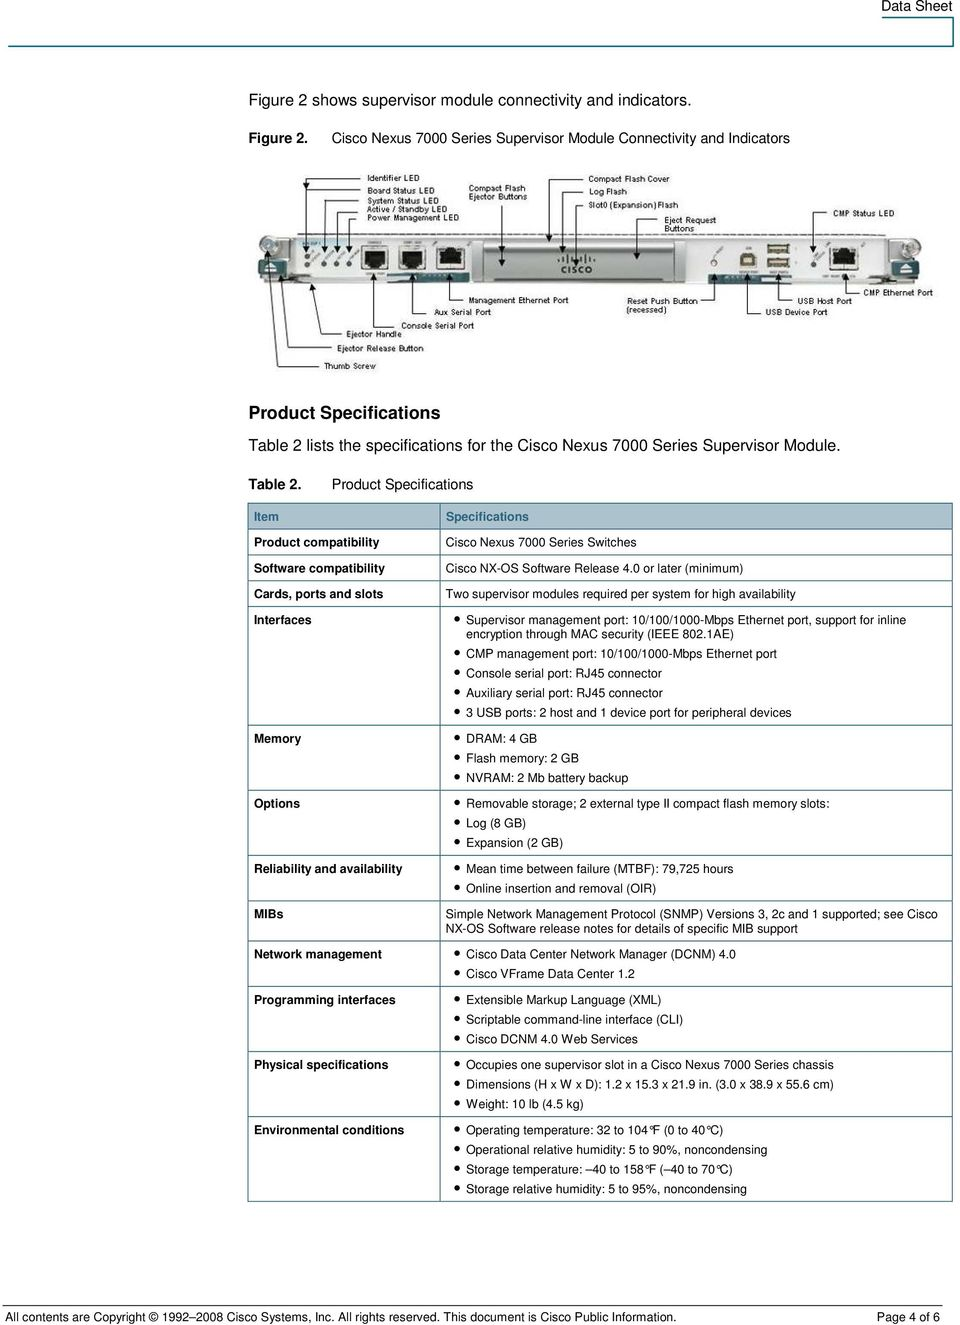 lists the specifications for the Cisco Nexus 7000 Series Supervisor Module. Table 2.